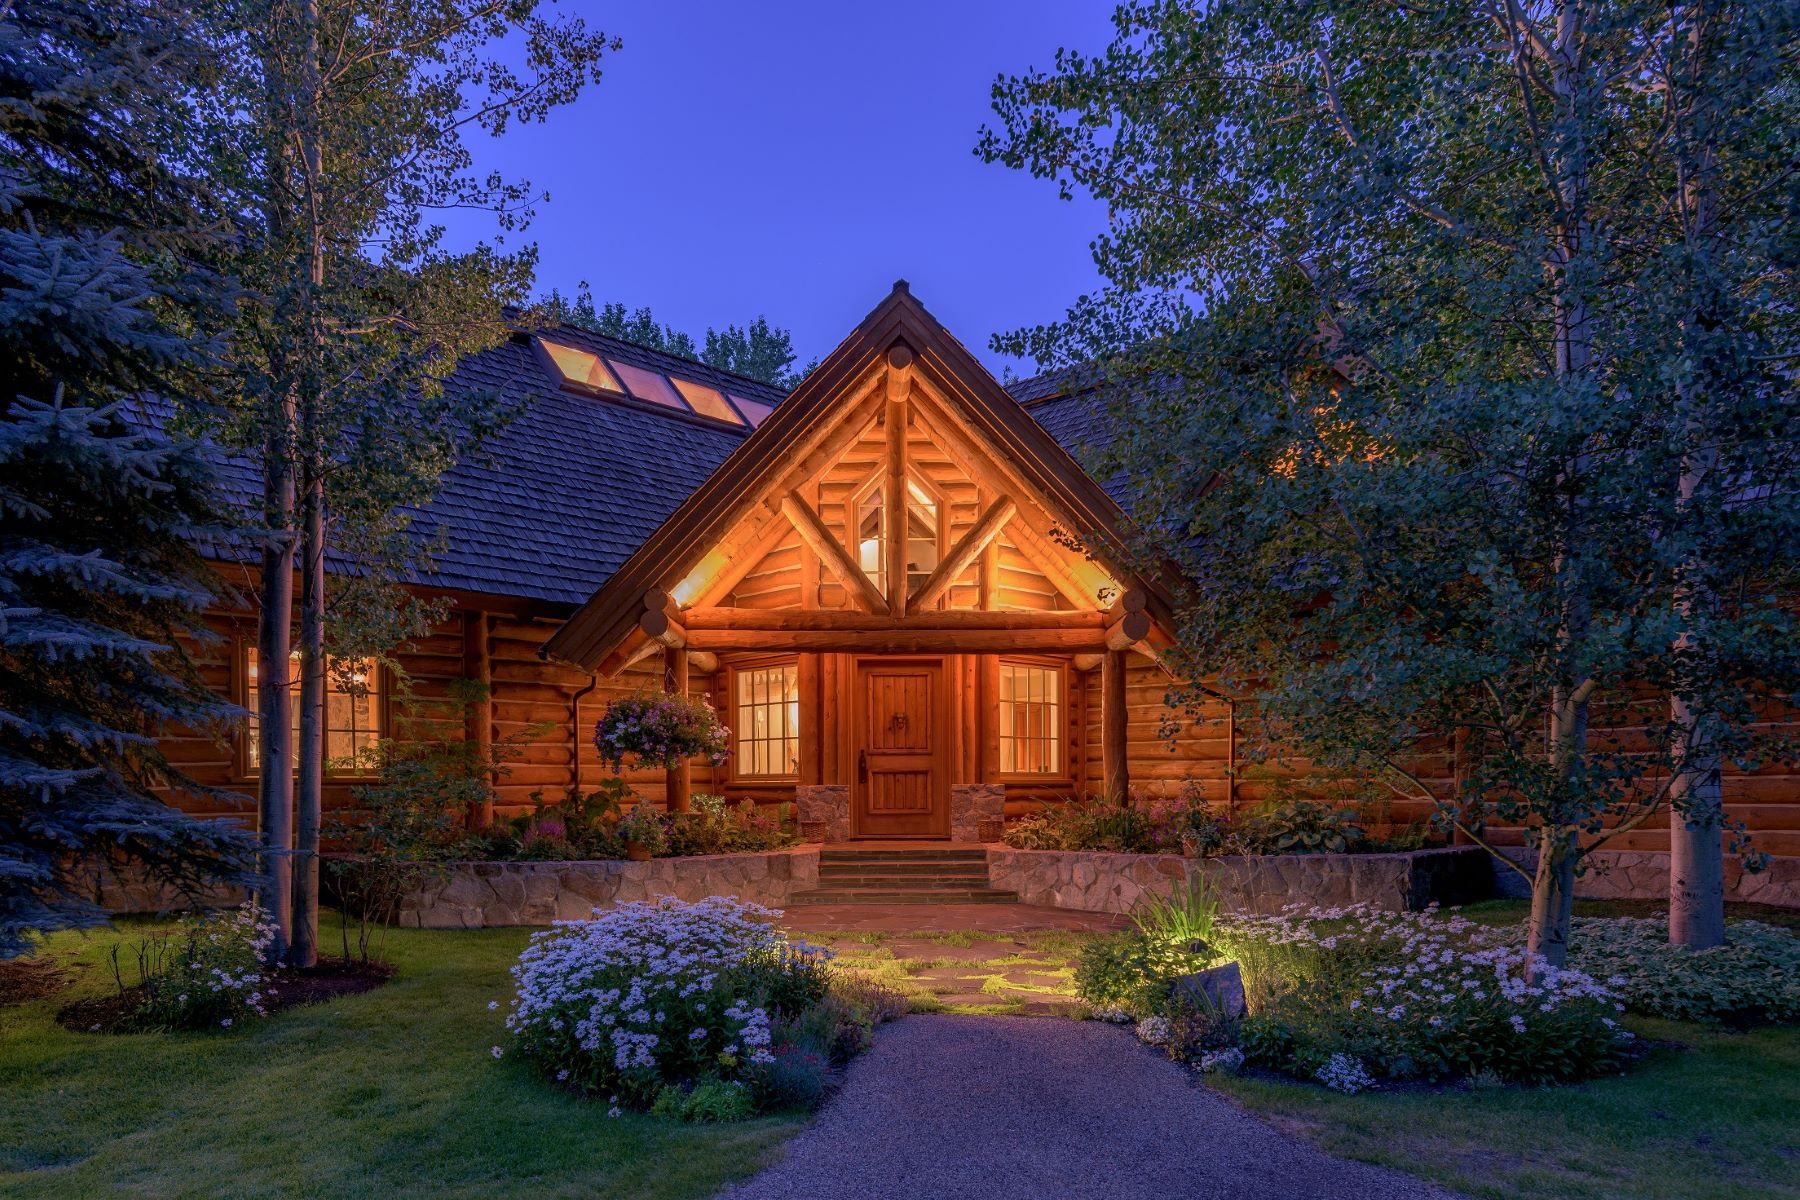 Single Family Homes for Active at Adirondack Home On The Big Wood River 30 Osprey Lane Hailey, Idaho 83333 United States